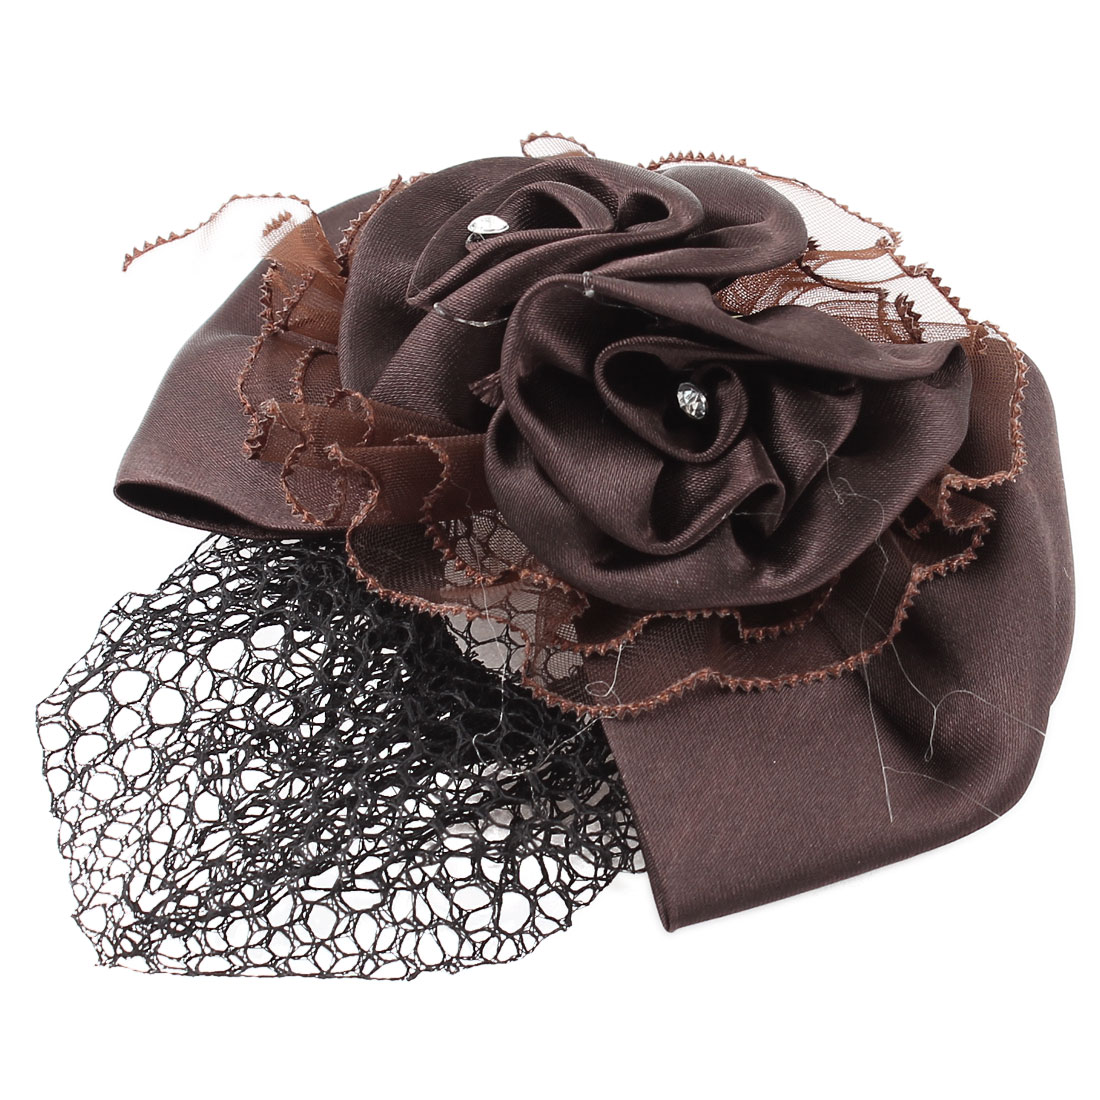 Headdress Bowtie Flower Accent Elastic Band Hairclip Hairnet Coffee Color